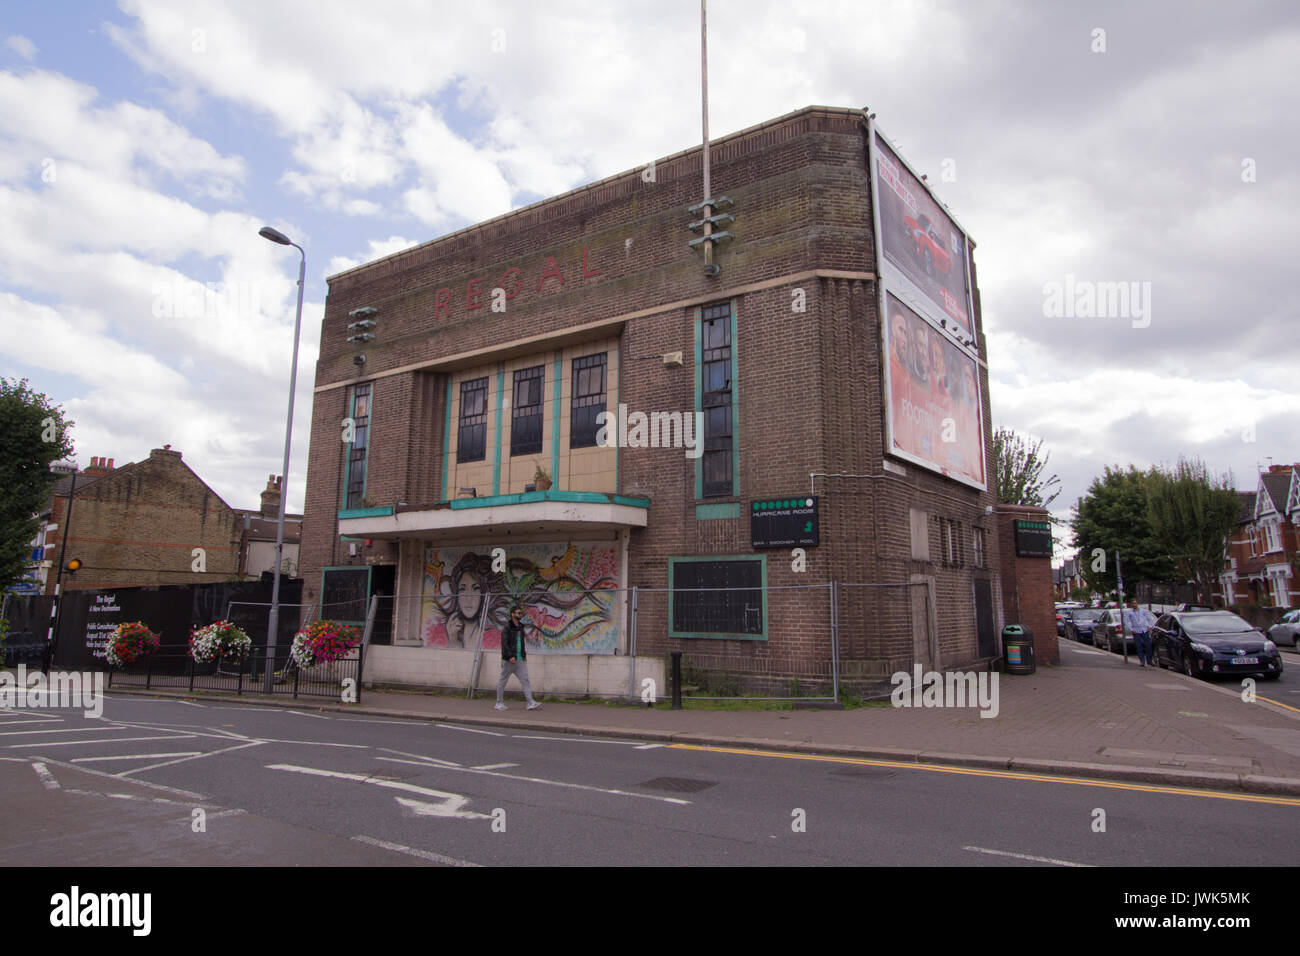 Regal cinema building, HIghams Park, London, UK, old picture house cinema, now used as snooker hall - Stock Image